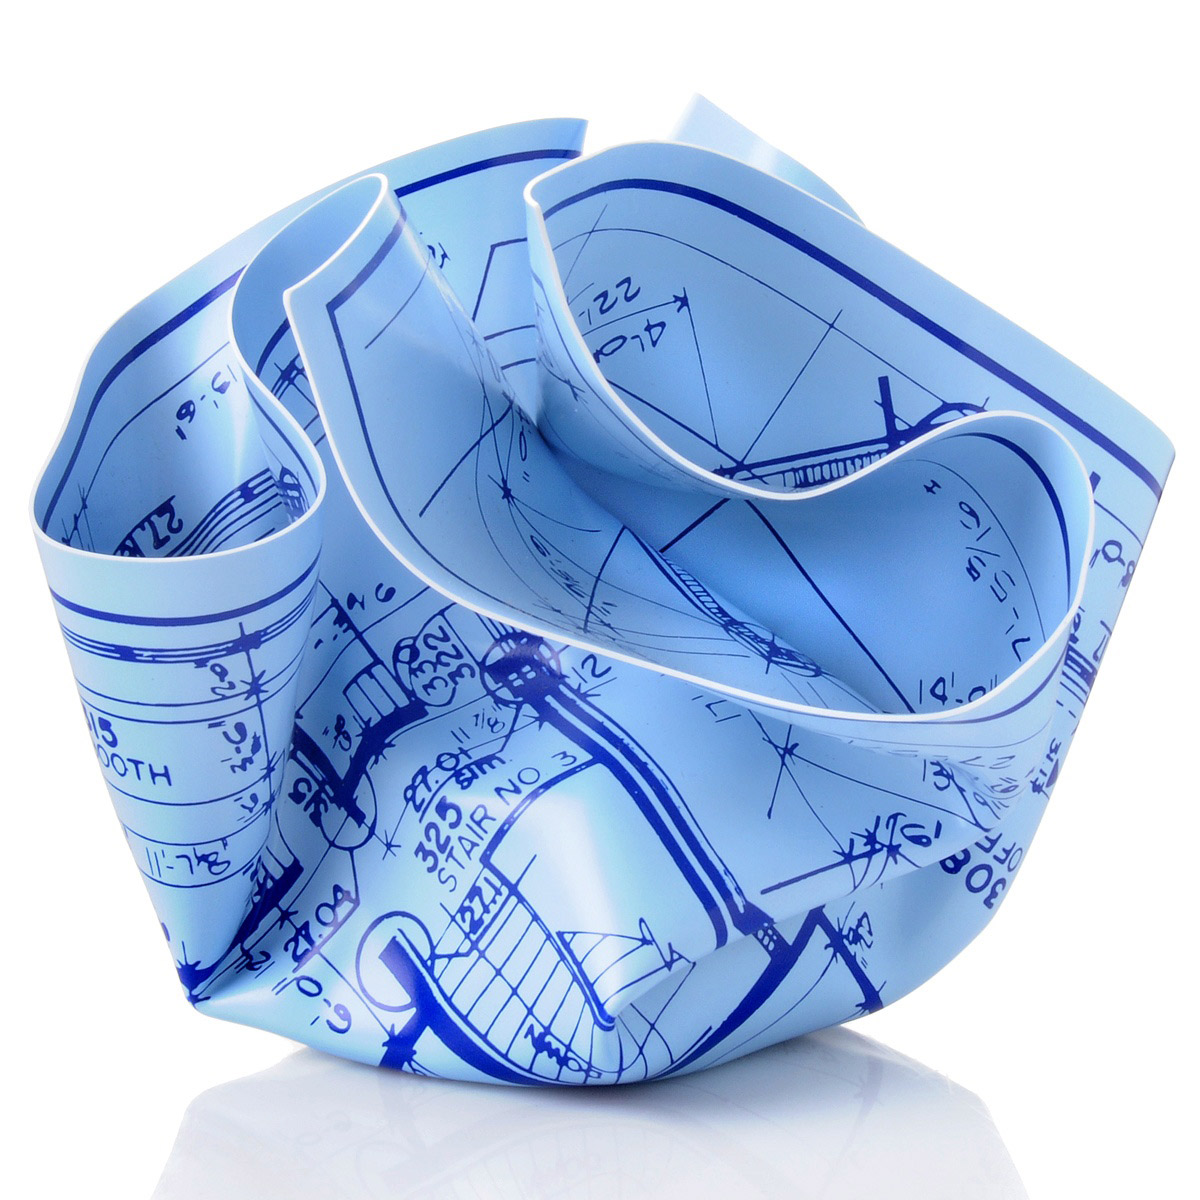 Architect S Crumpled Blueprint Paperweight The Green Head